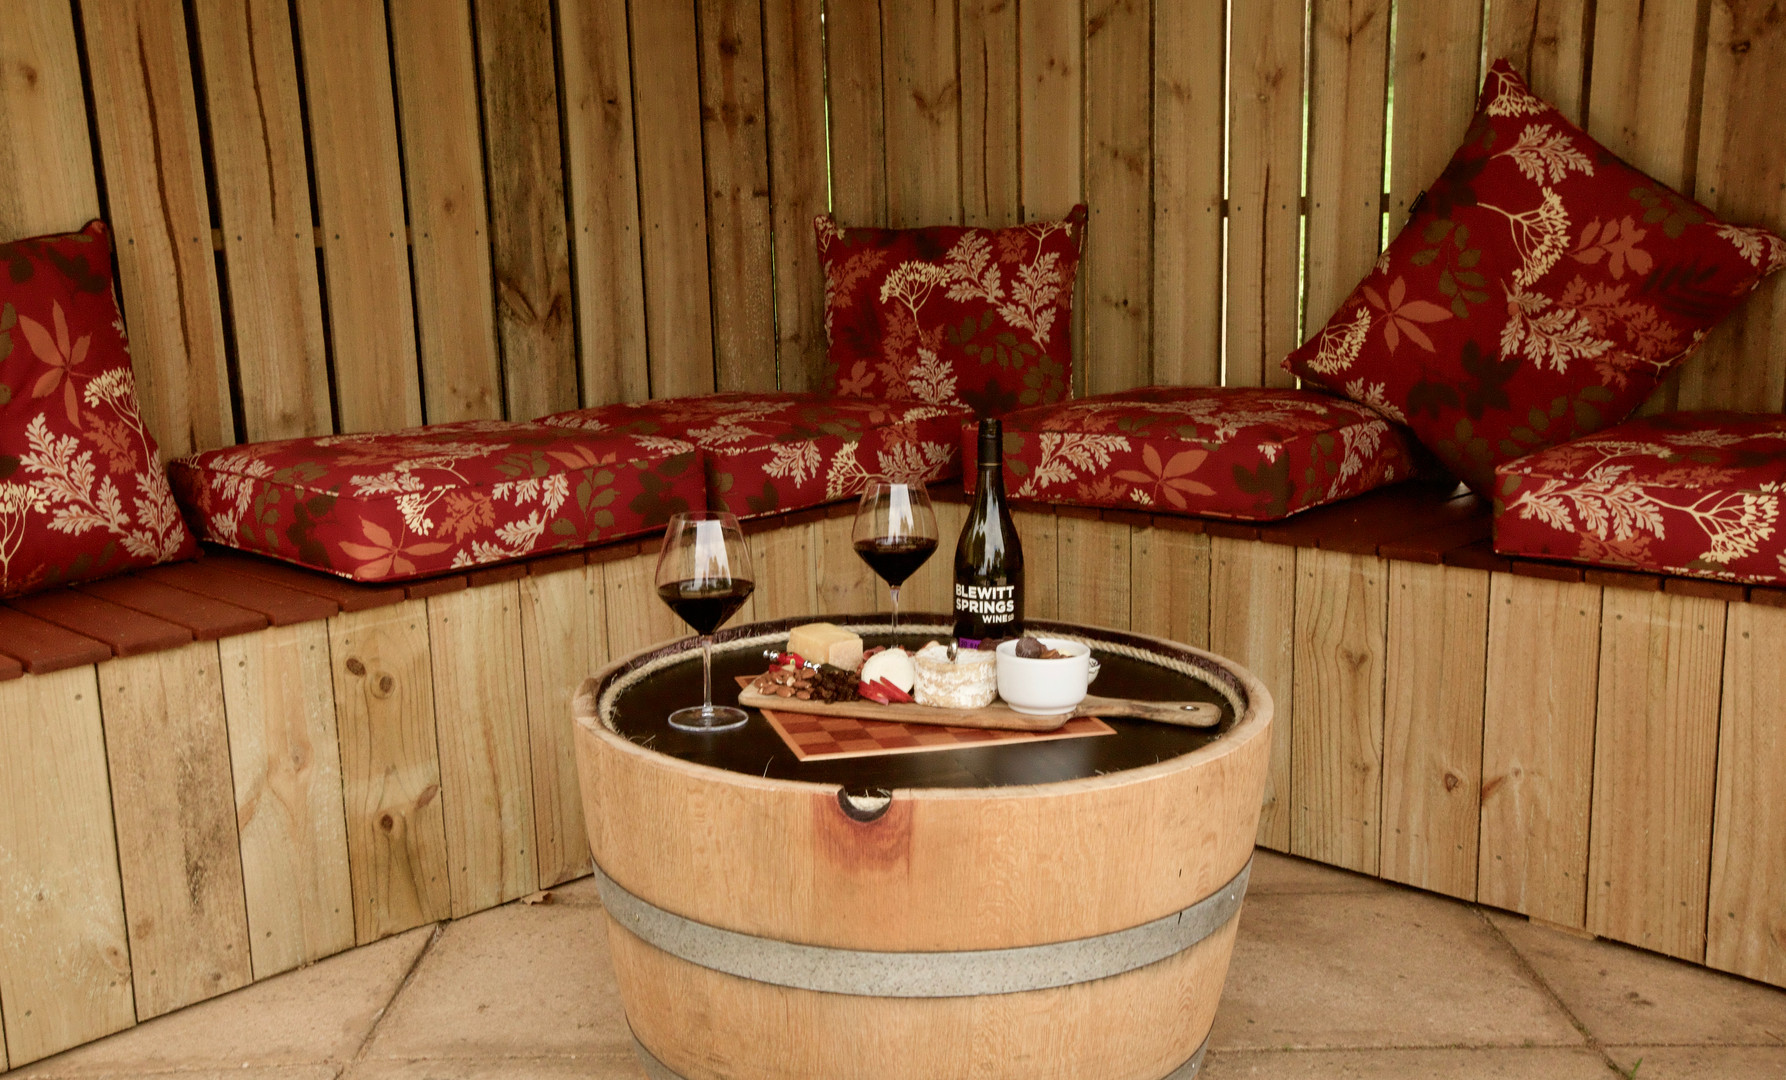 A place to sit and indulge